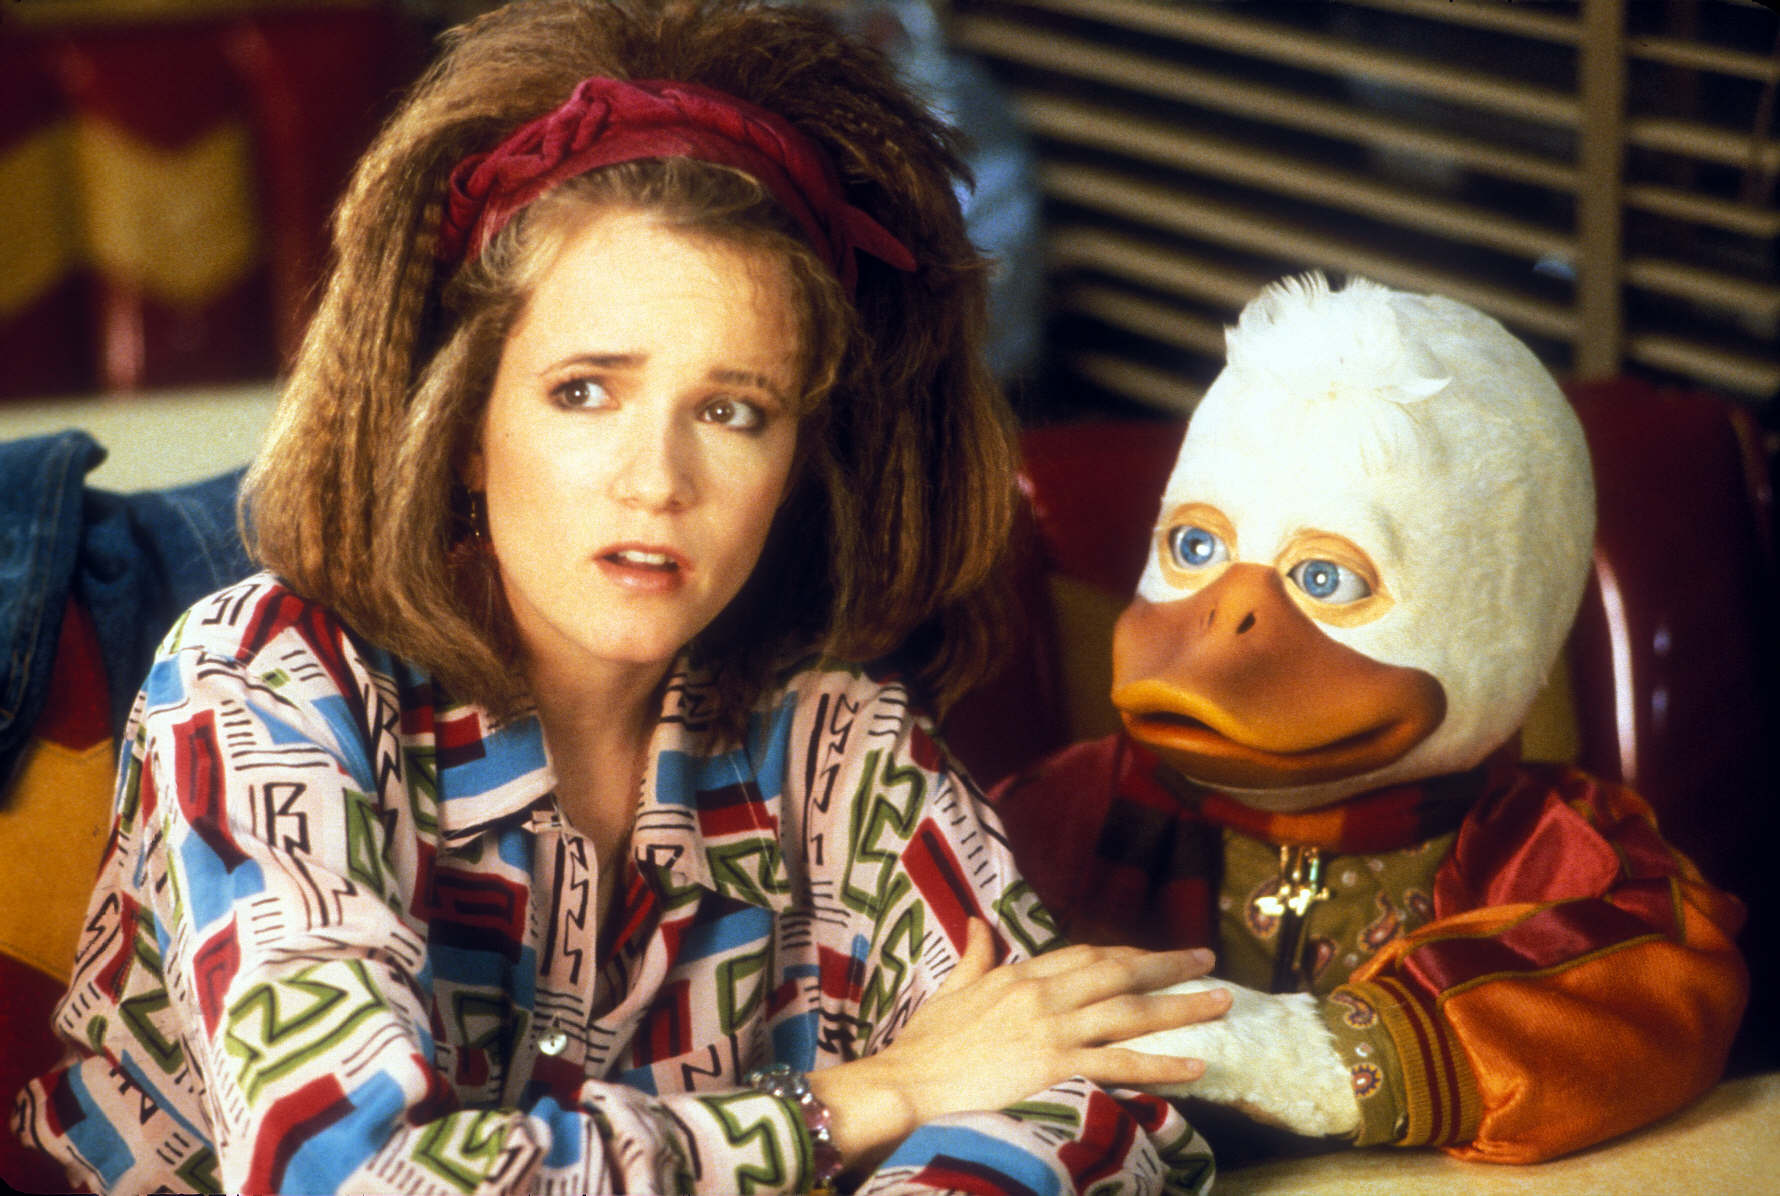 Howard the Duck 1986 7 30 Films From The 80s That Are So Bad They're Actually Good